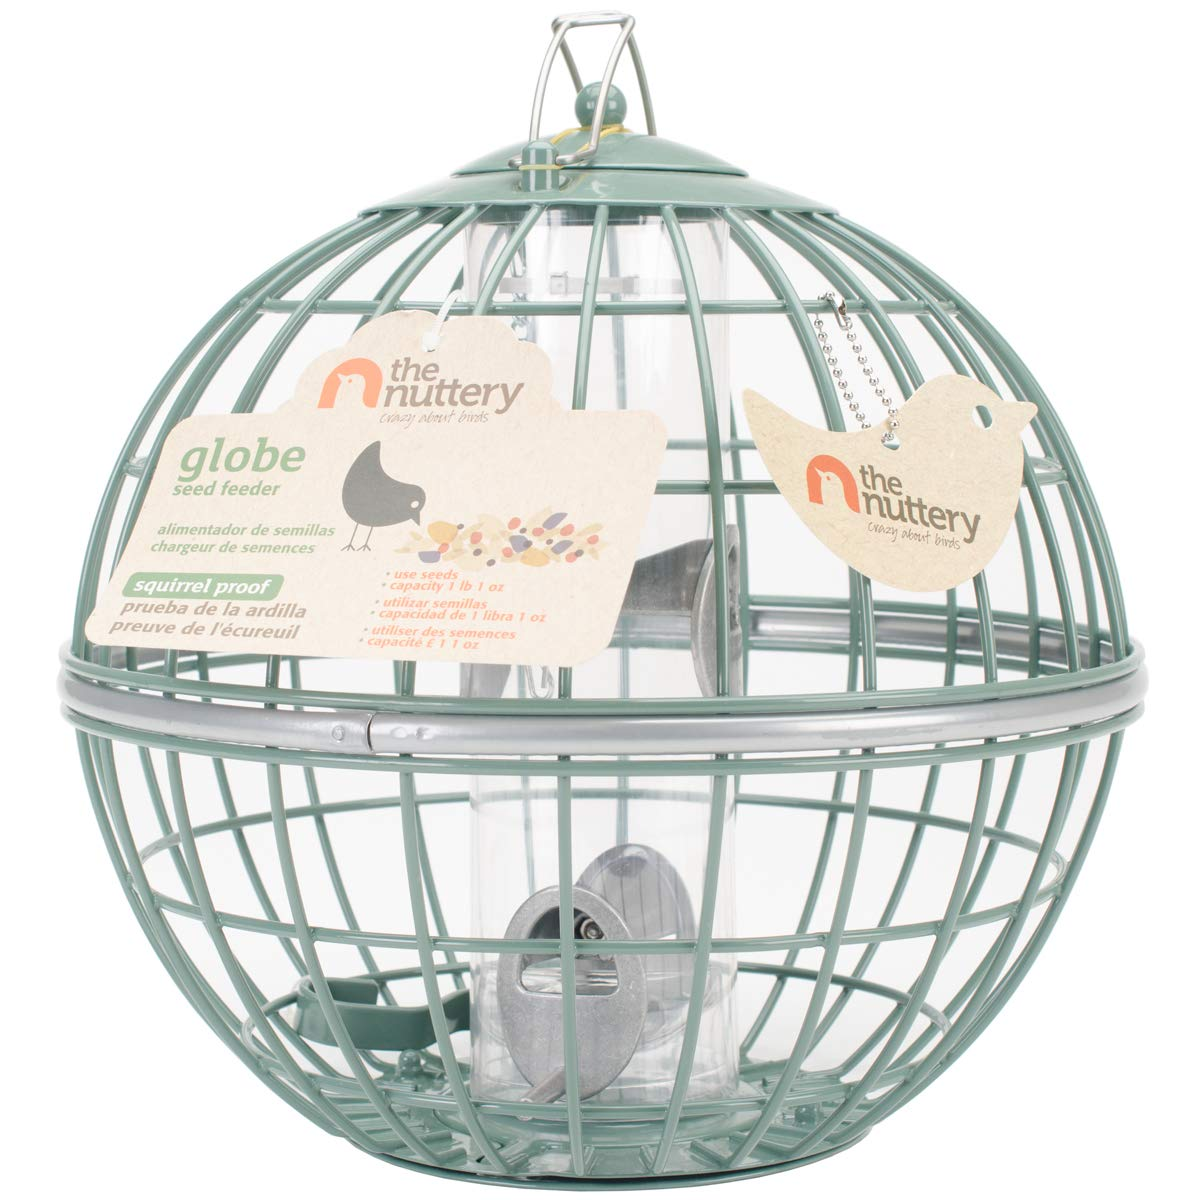 The Nuttery NT071 Globe Seed Feeder